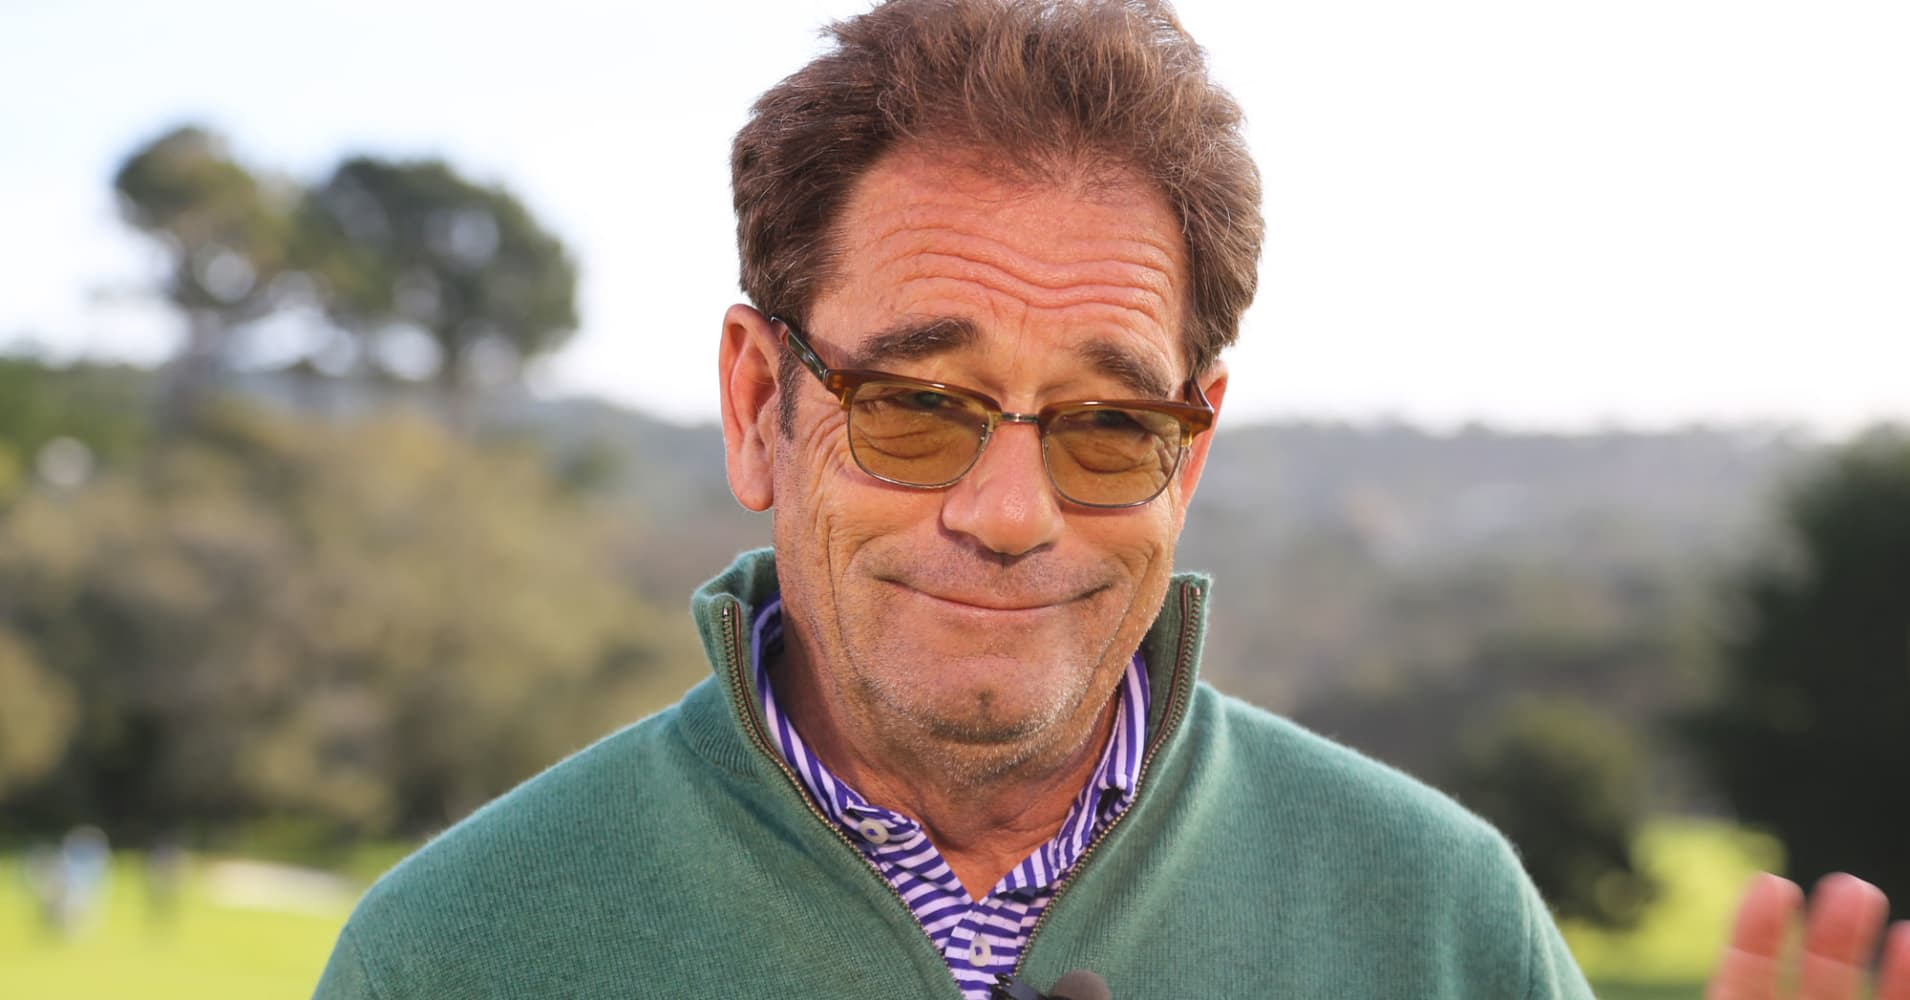 Huey Lewis I39m Worried About Free Music Not Stocks